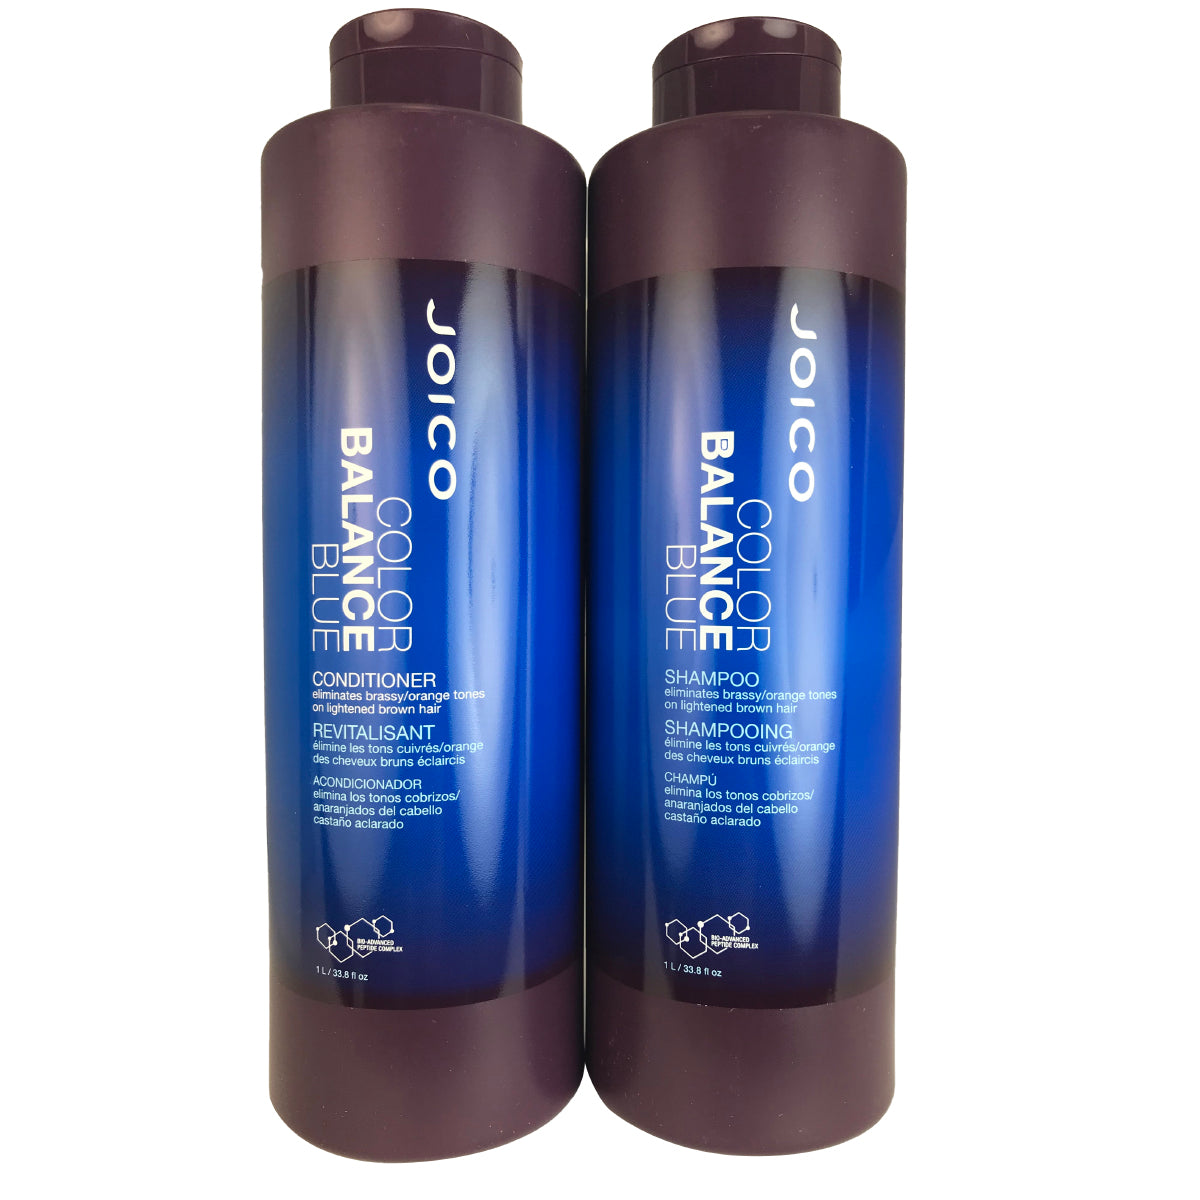 Joico Color Balance Blue Hair Shampoo and Conditioner Duo 33.8 oz Each